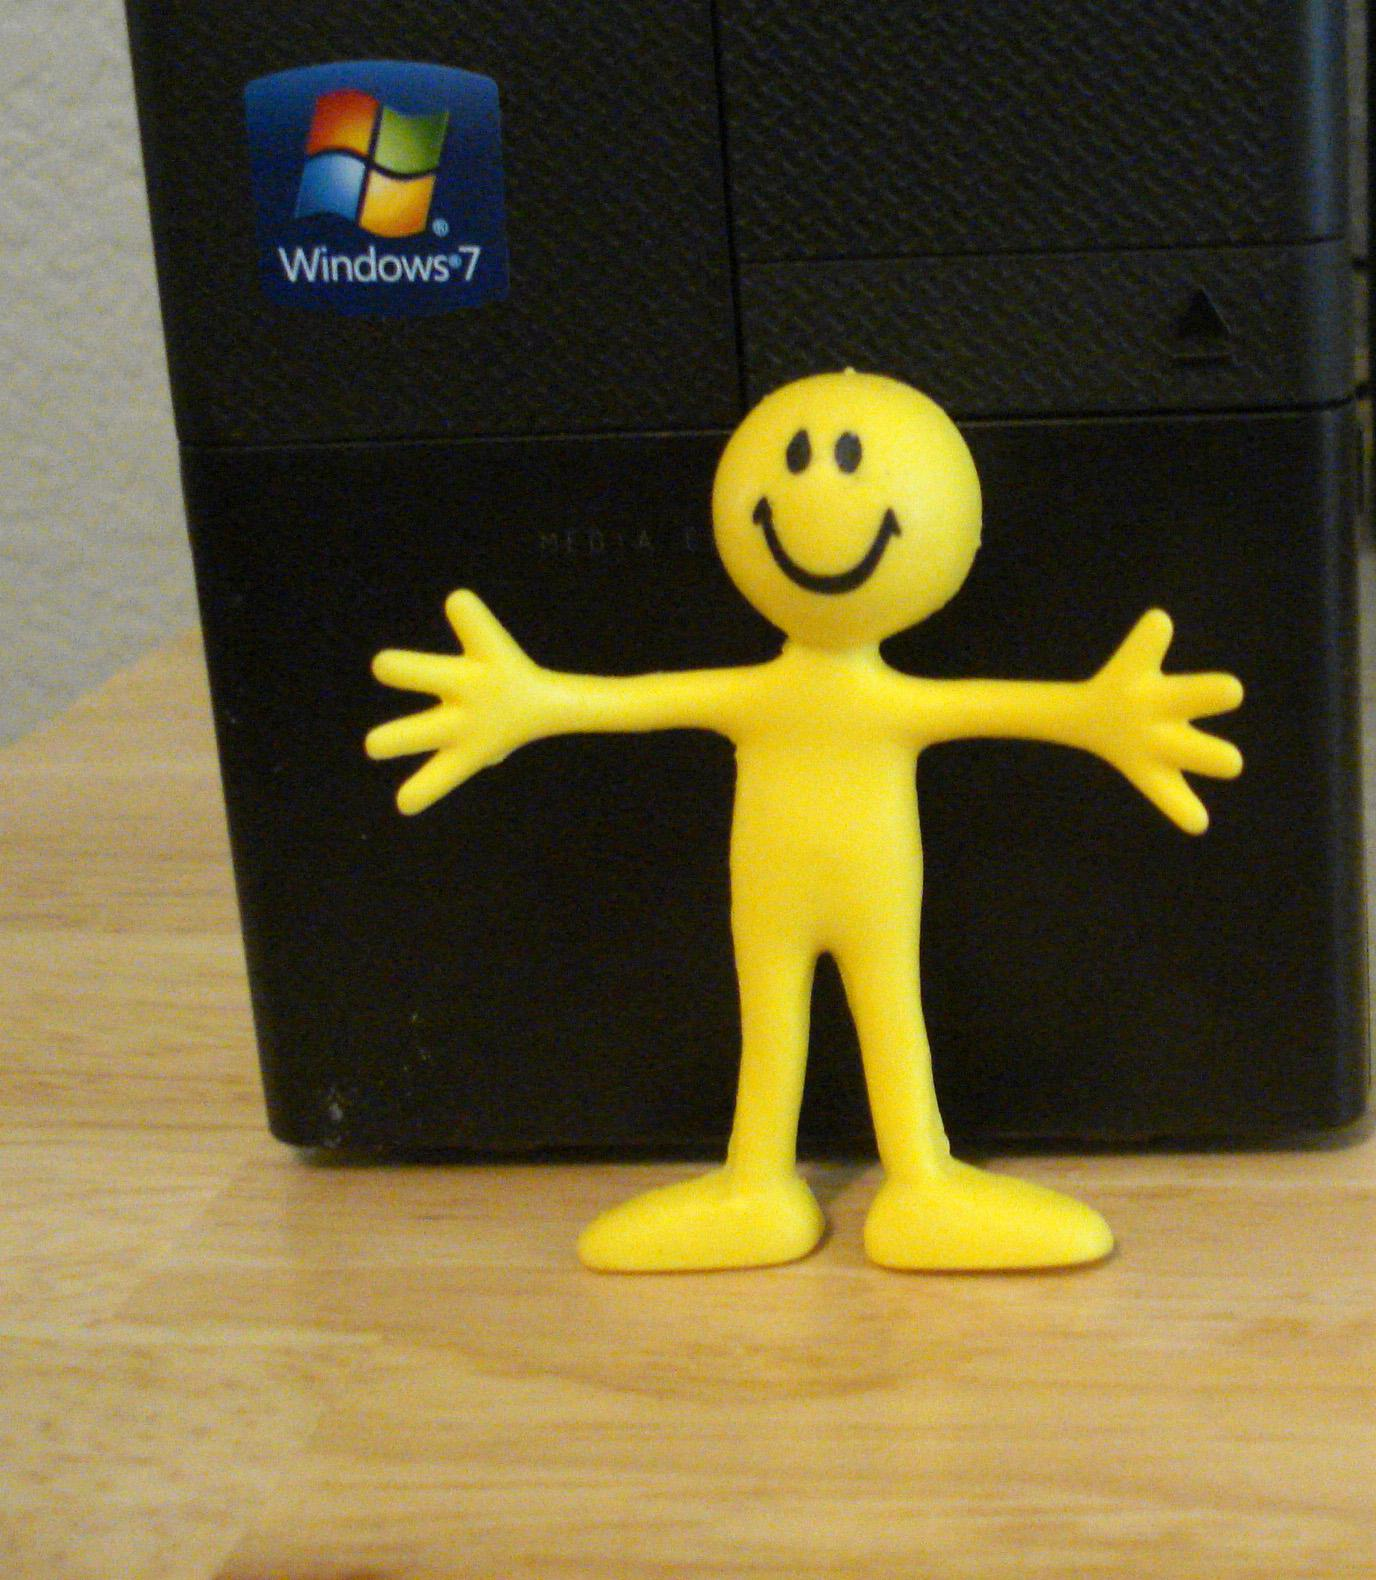 computer-tower-and-a-smiling-face